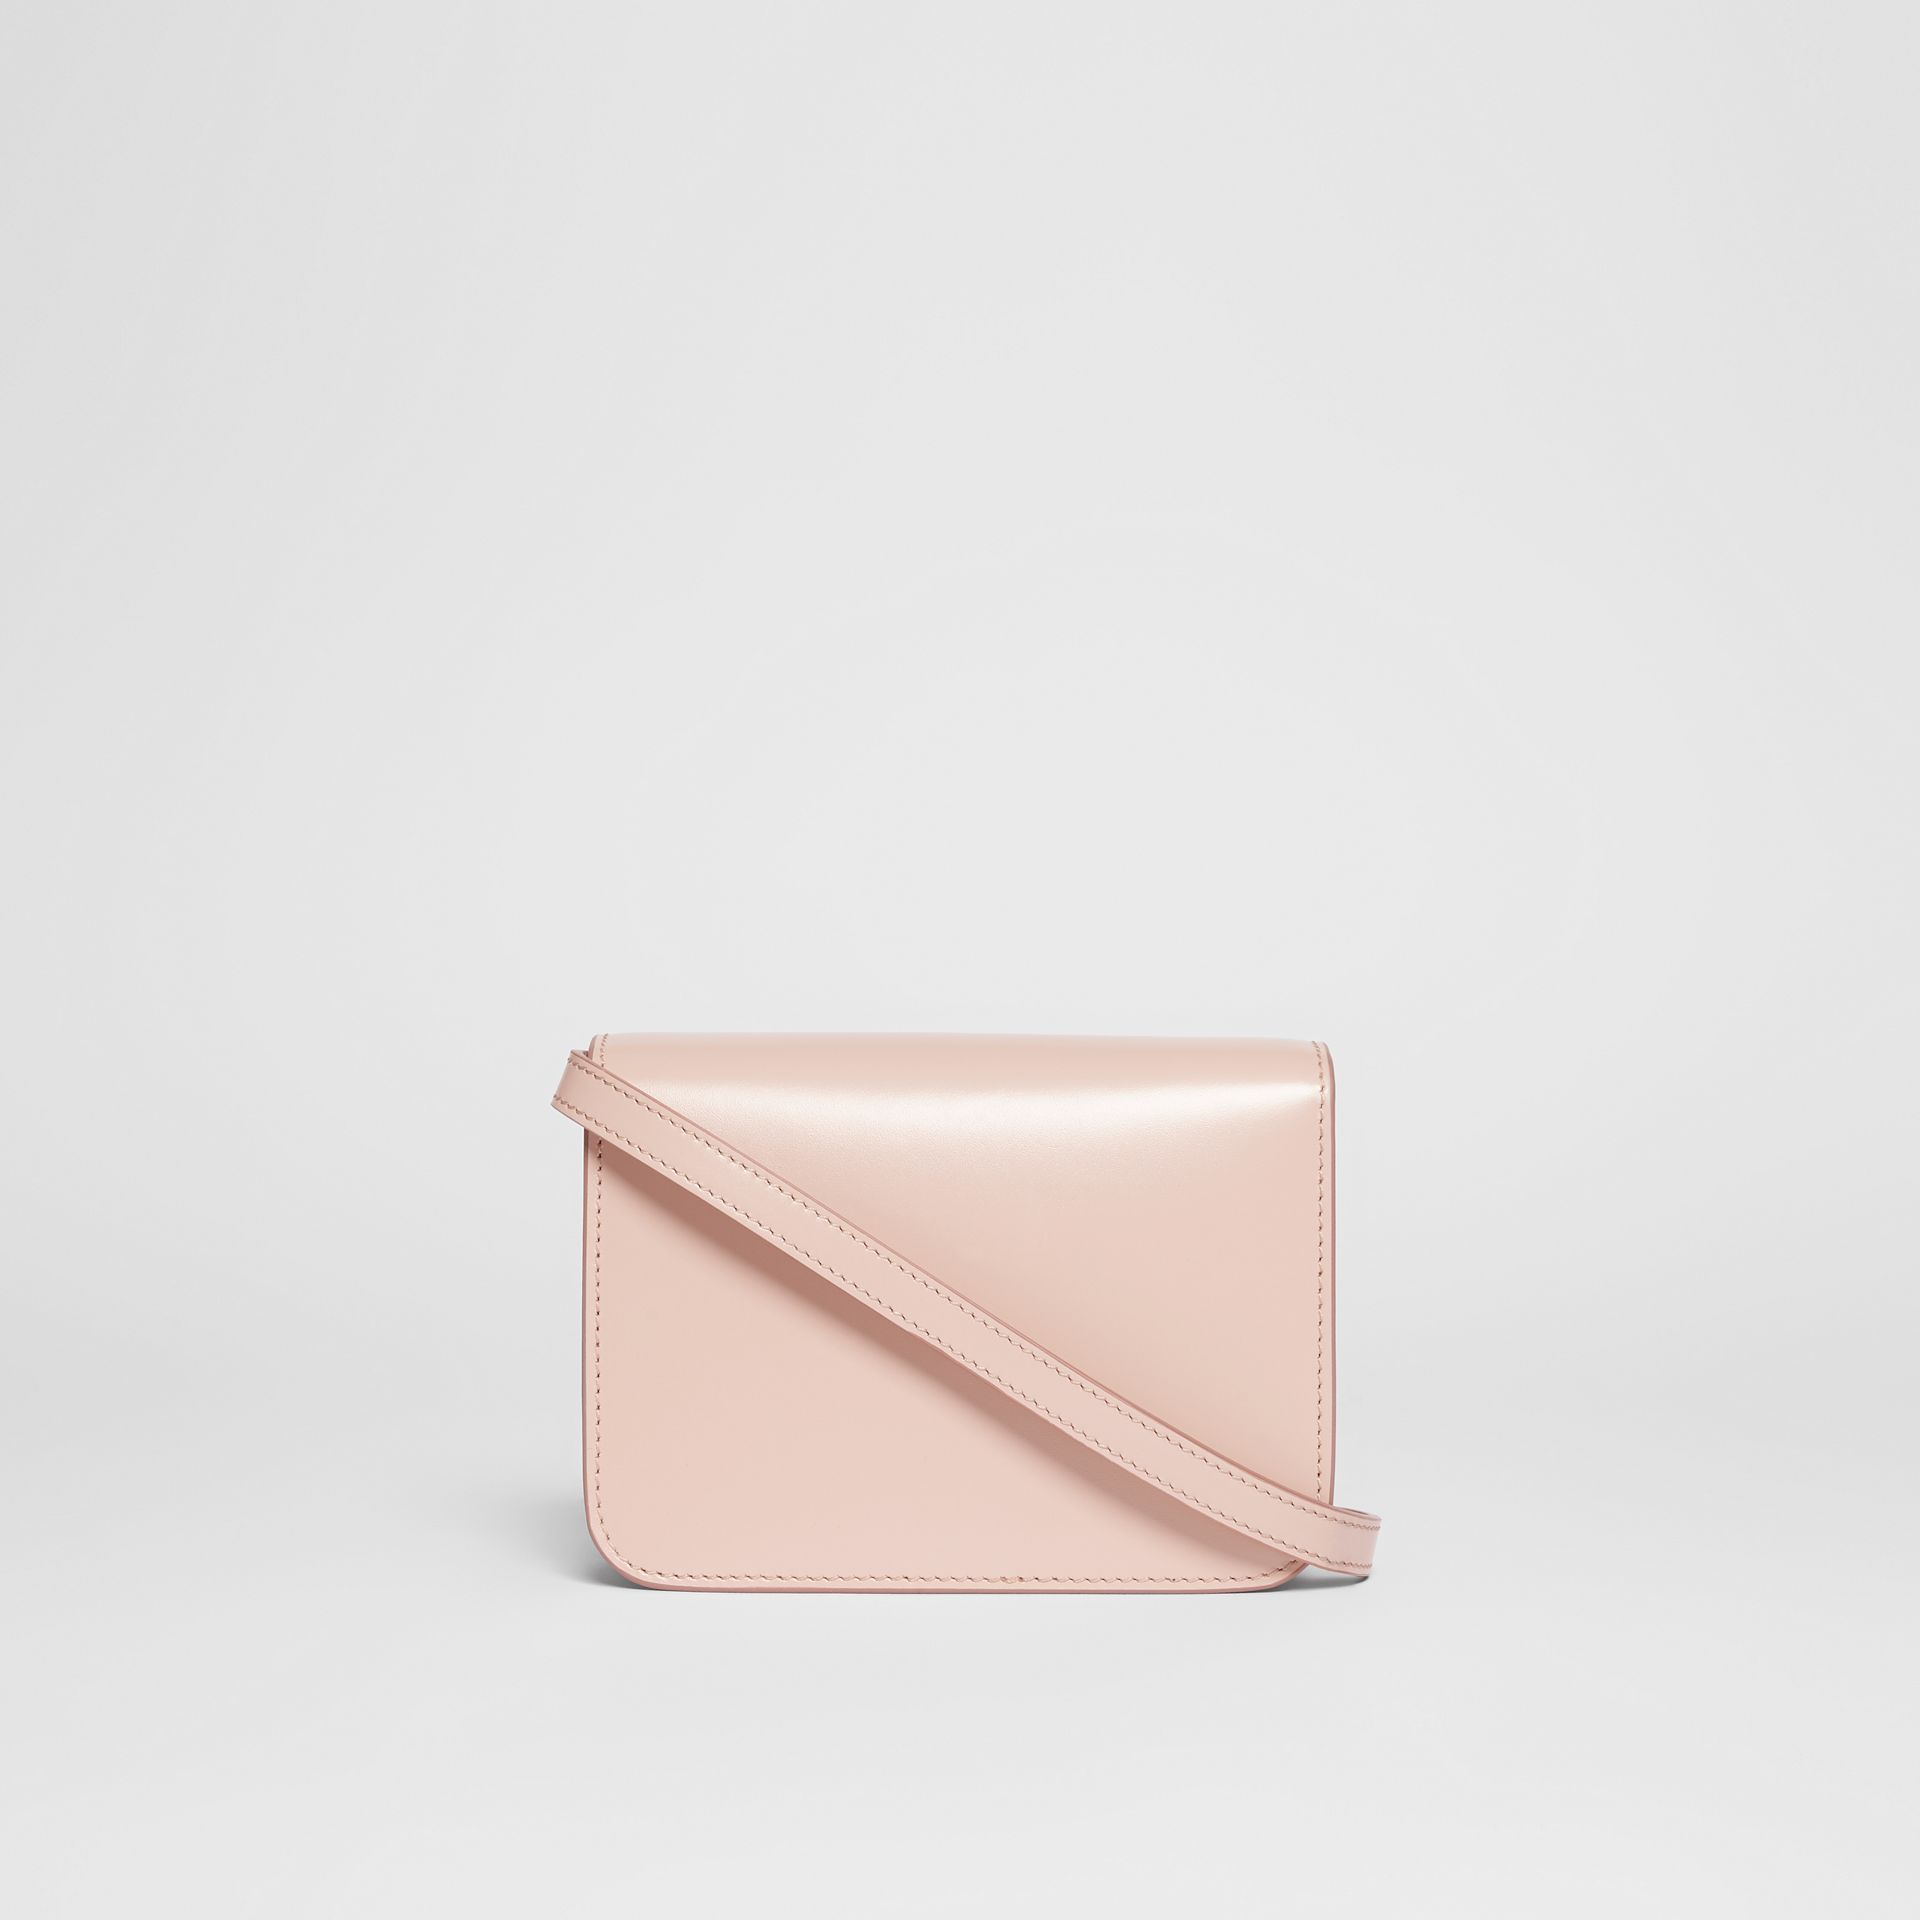 Mini Leather TB Bag in Rose Beige - Women | Burberry Hong Kong S.A.R - gallery image 7